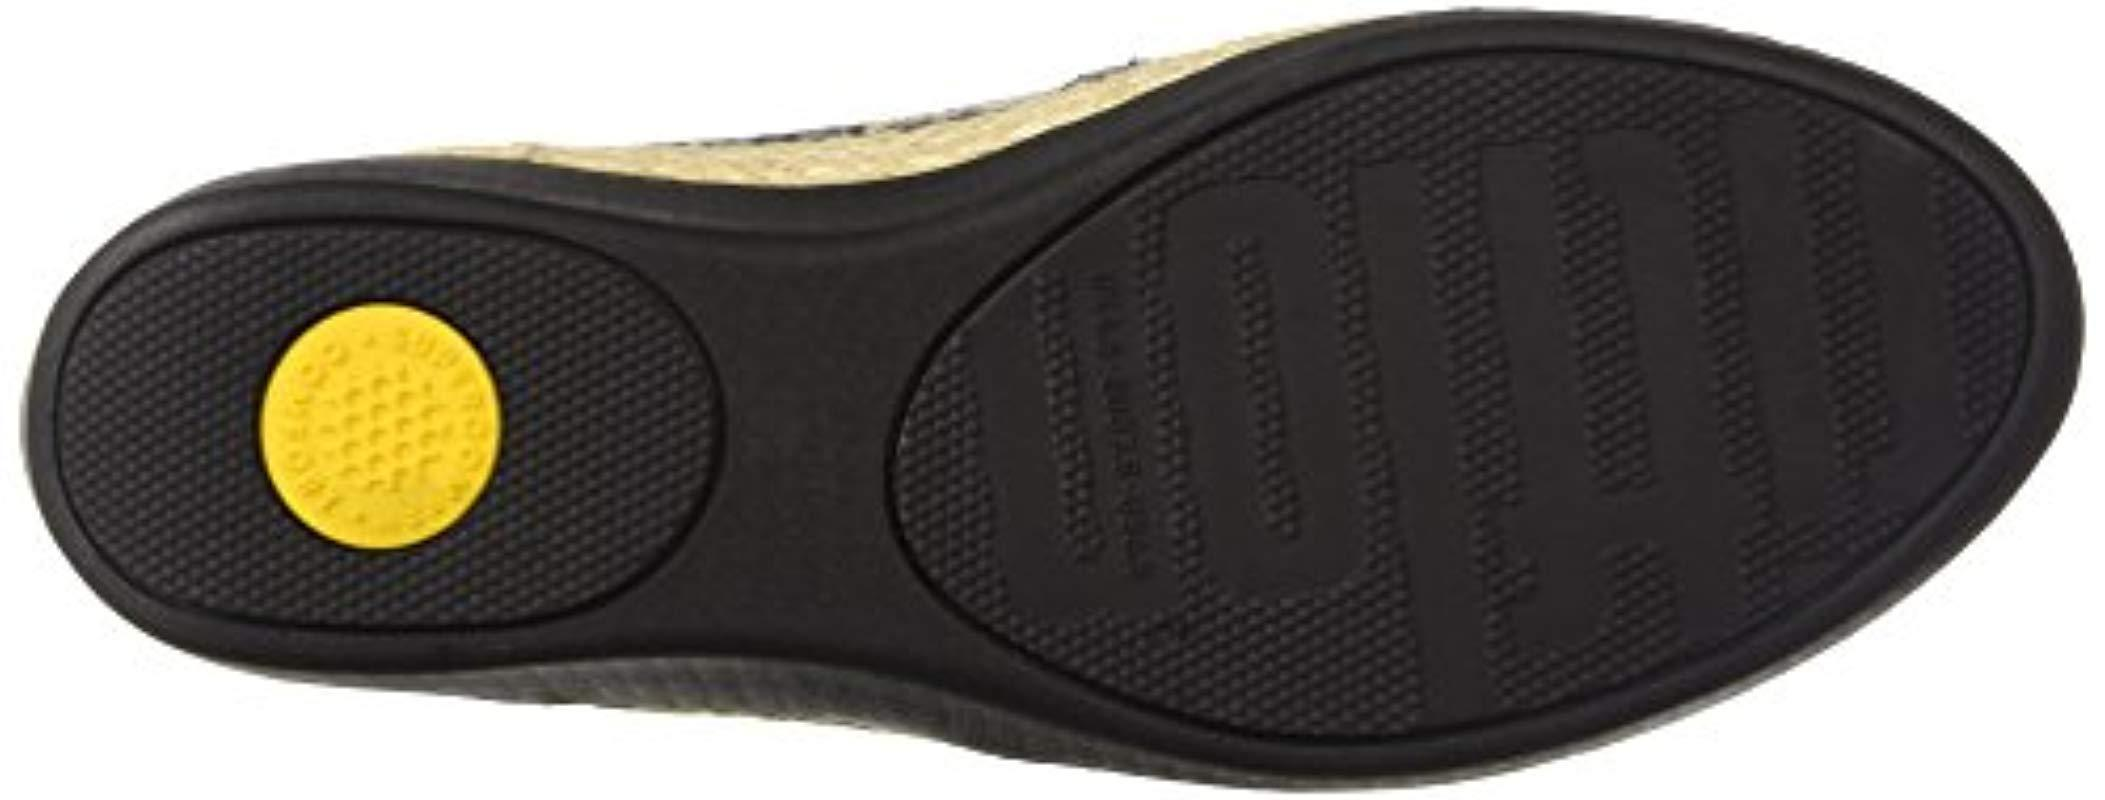 Fitflop Leather Casa Loafers Sneaker - Save 25%